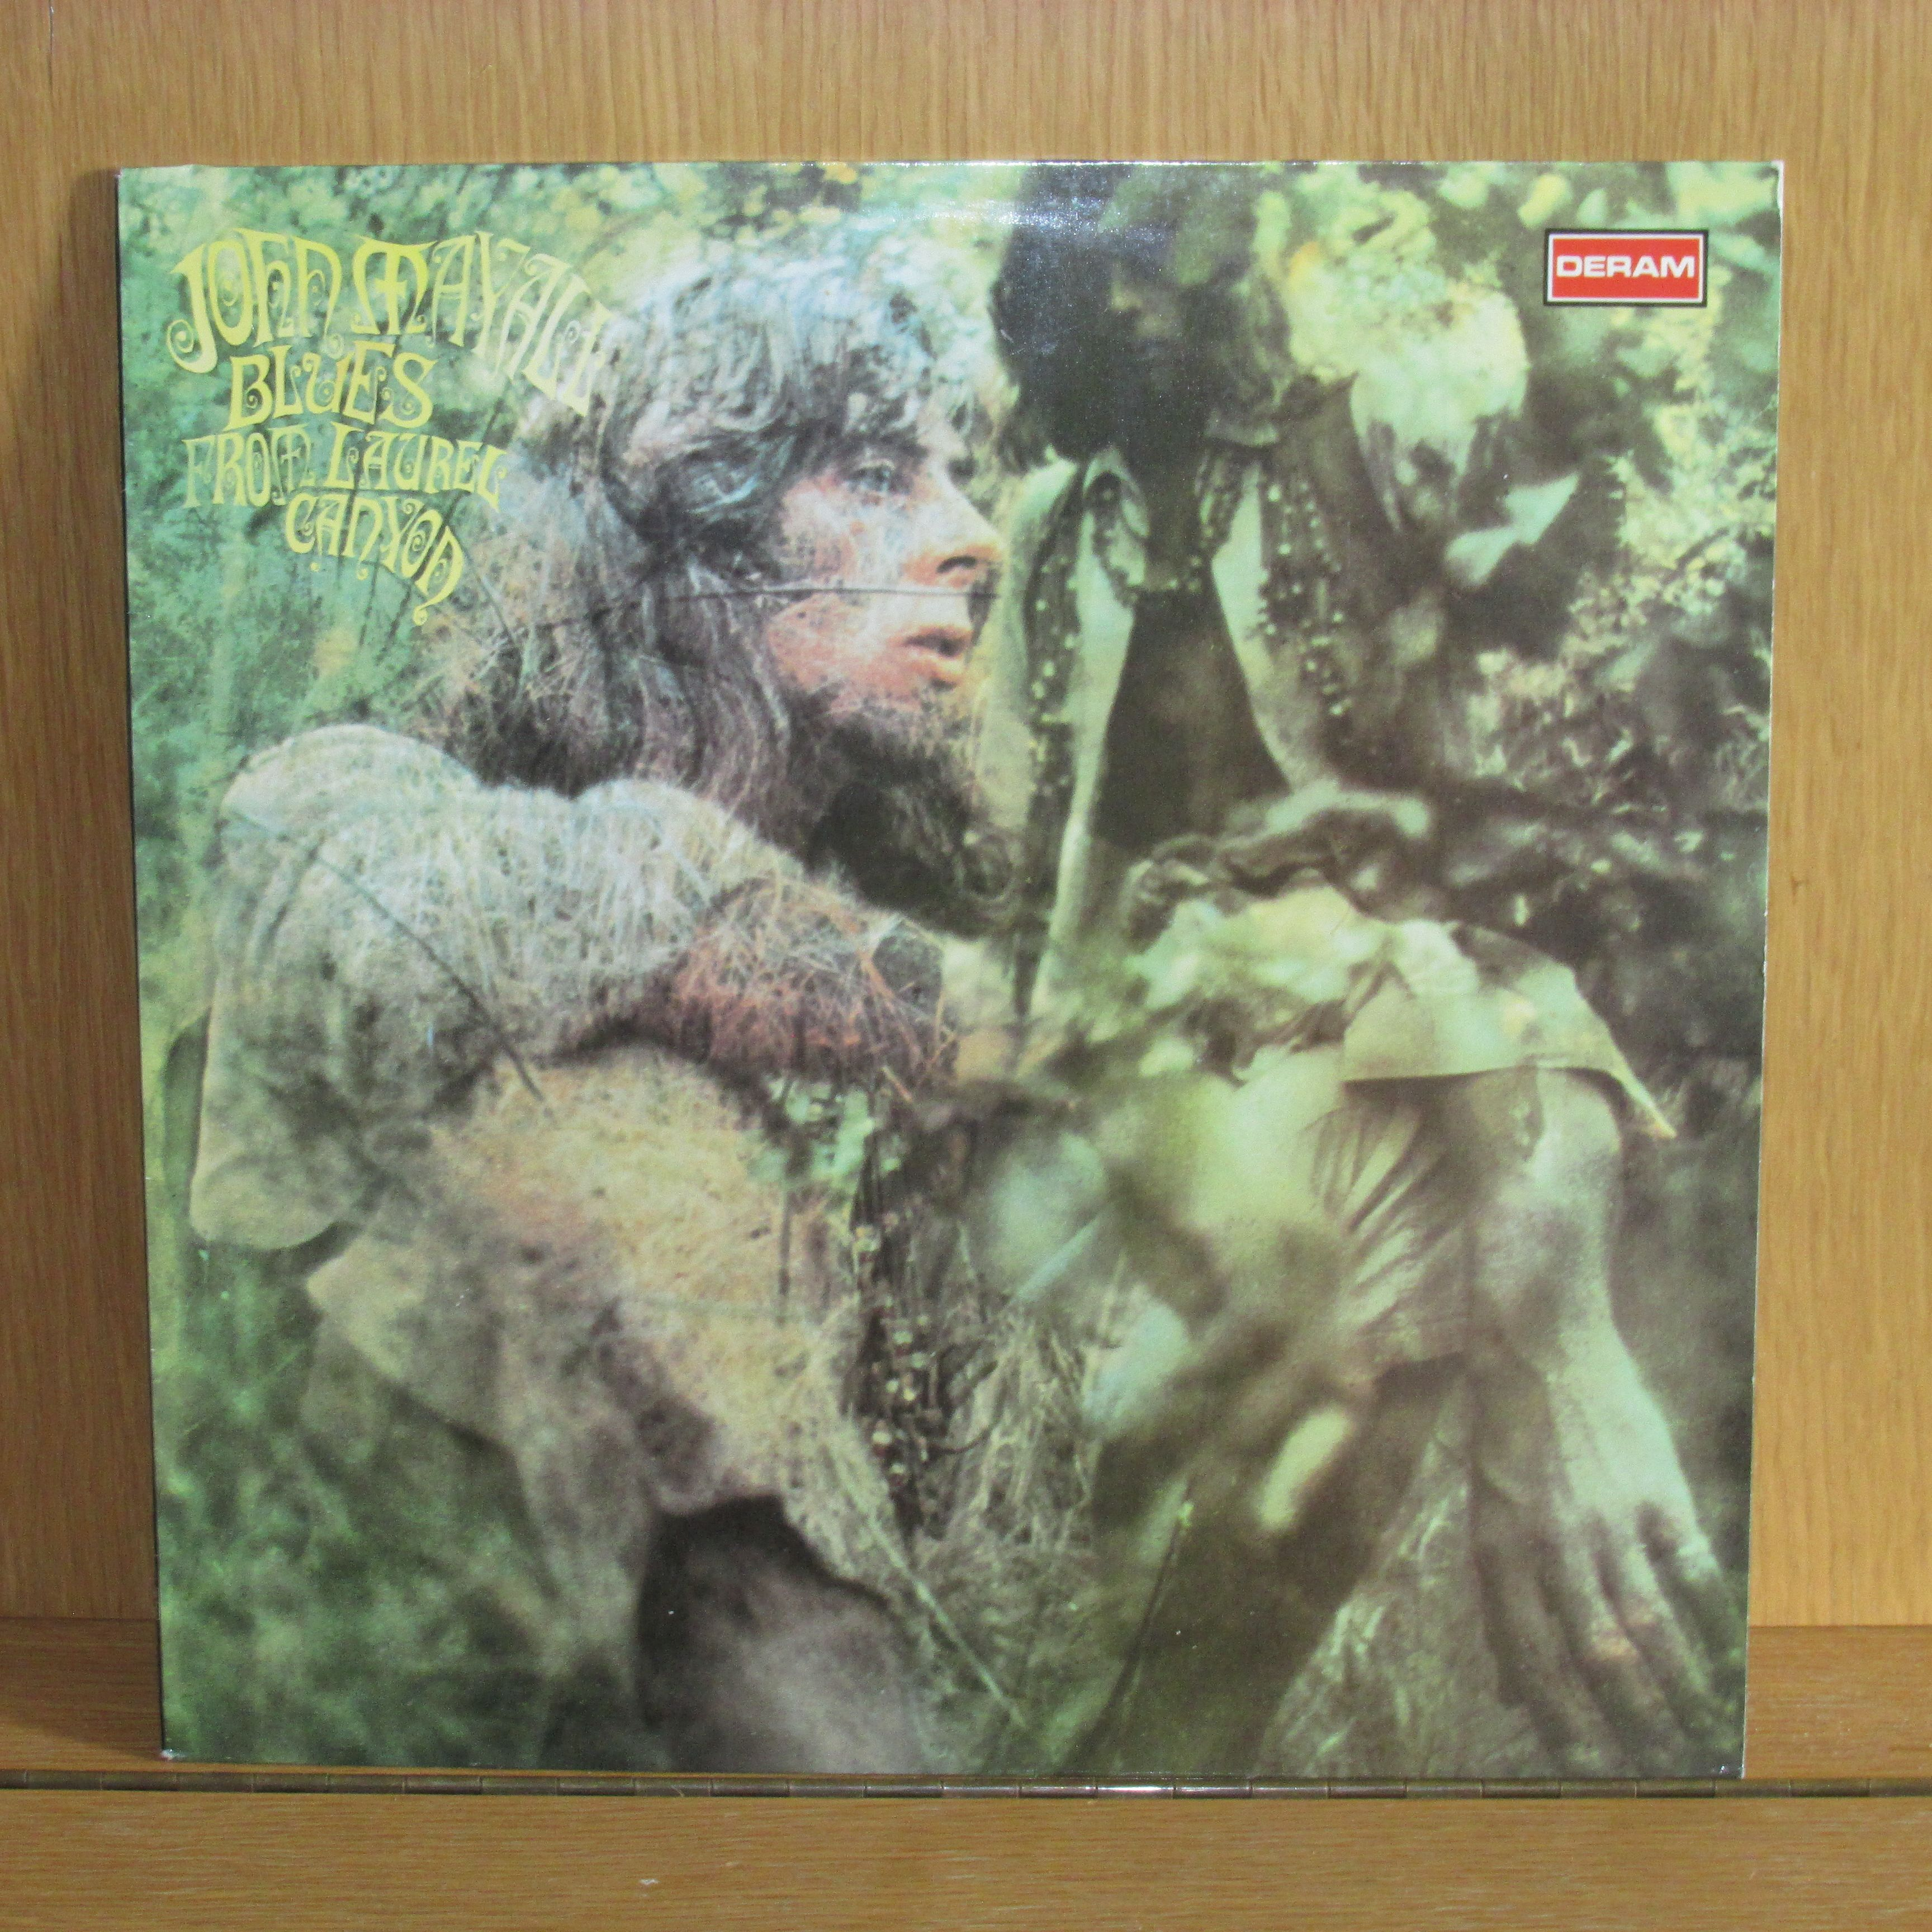 John Mayall Blues From Laurel Canyon LP undefined